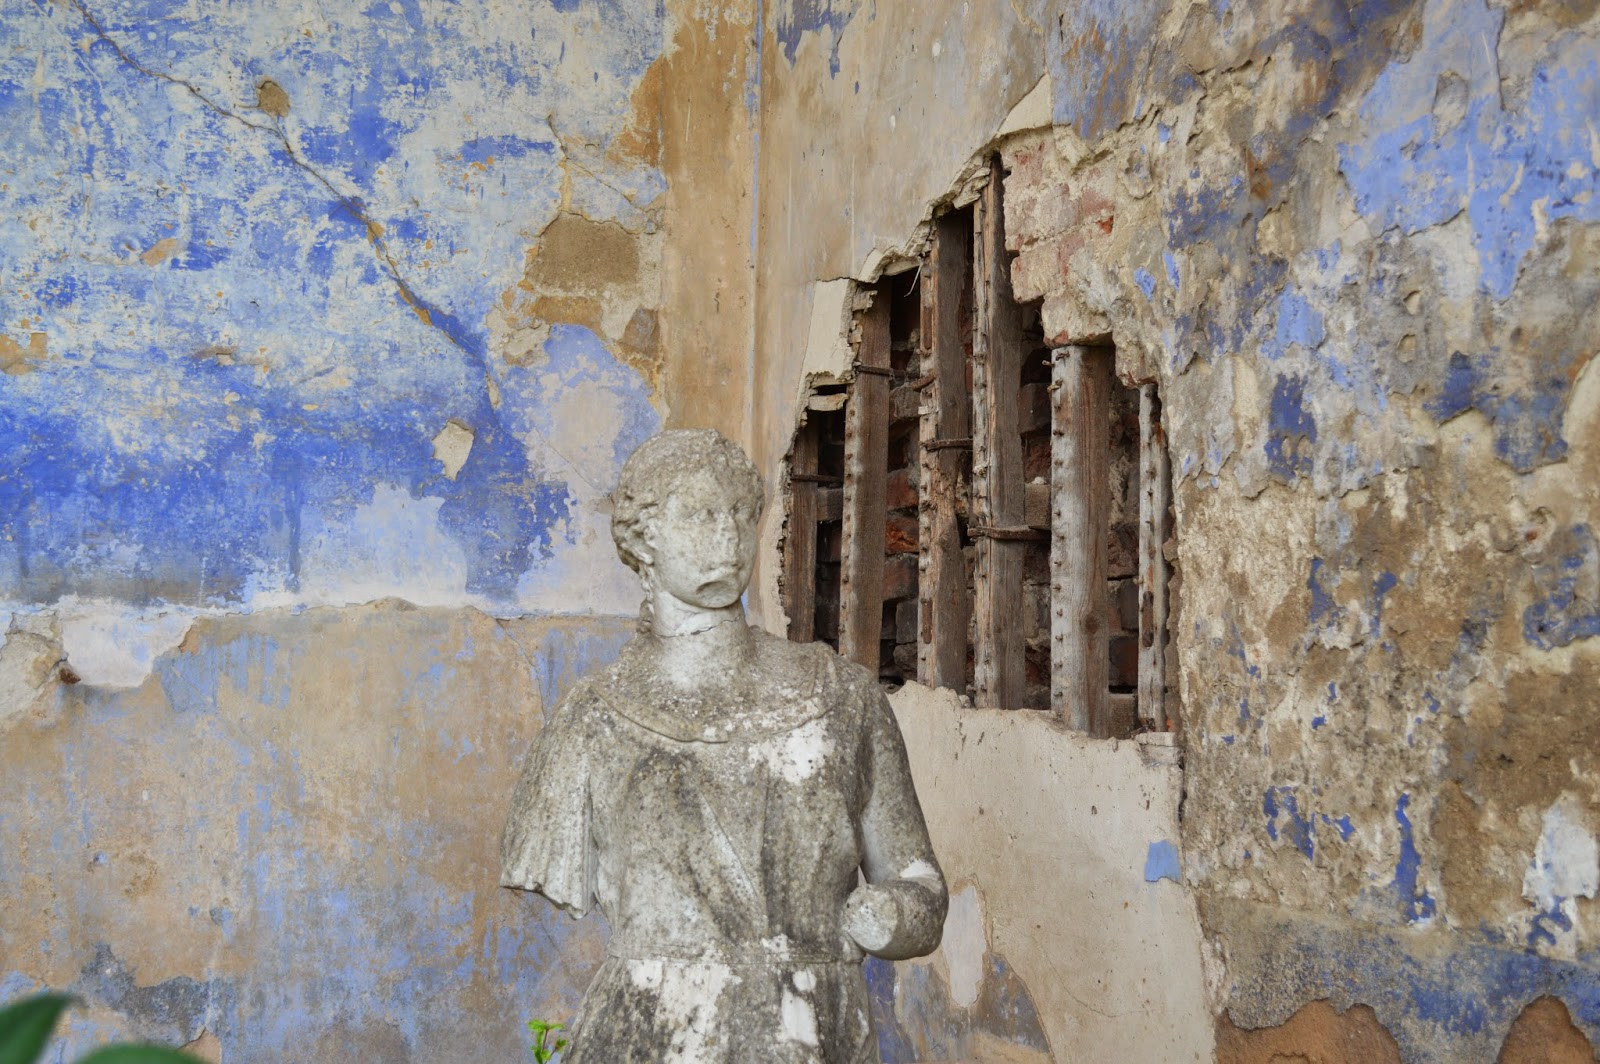 photo, photograph, review, visit, day trip, Ticknall, Calke Abbey, National Trust, historical property, Harpur, decay, faded grandeur, abandoned, preserved, tour, degenerate, disrepair, conservation